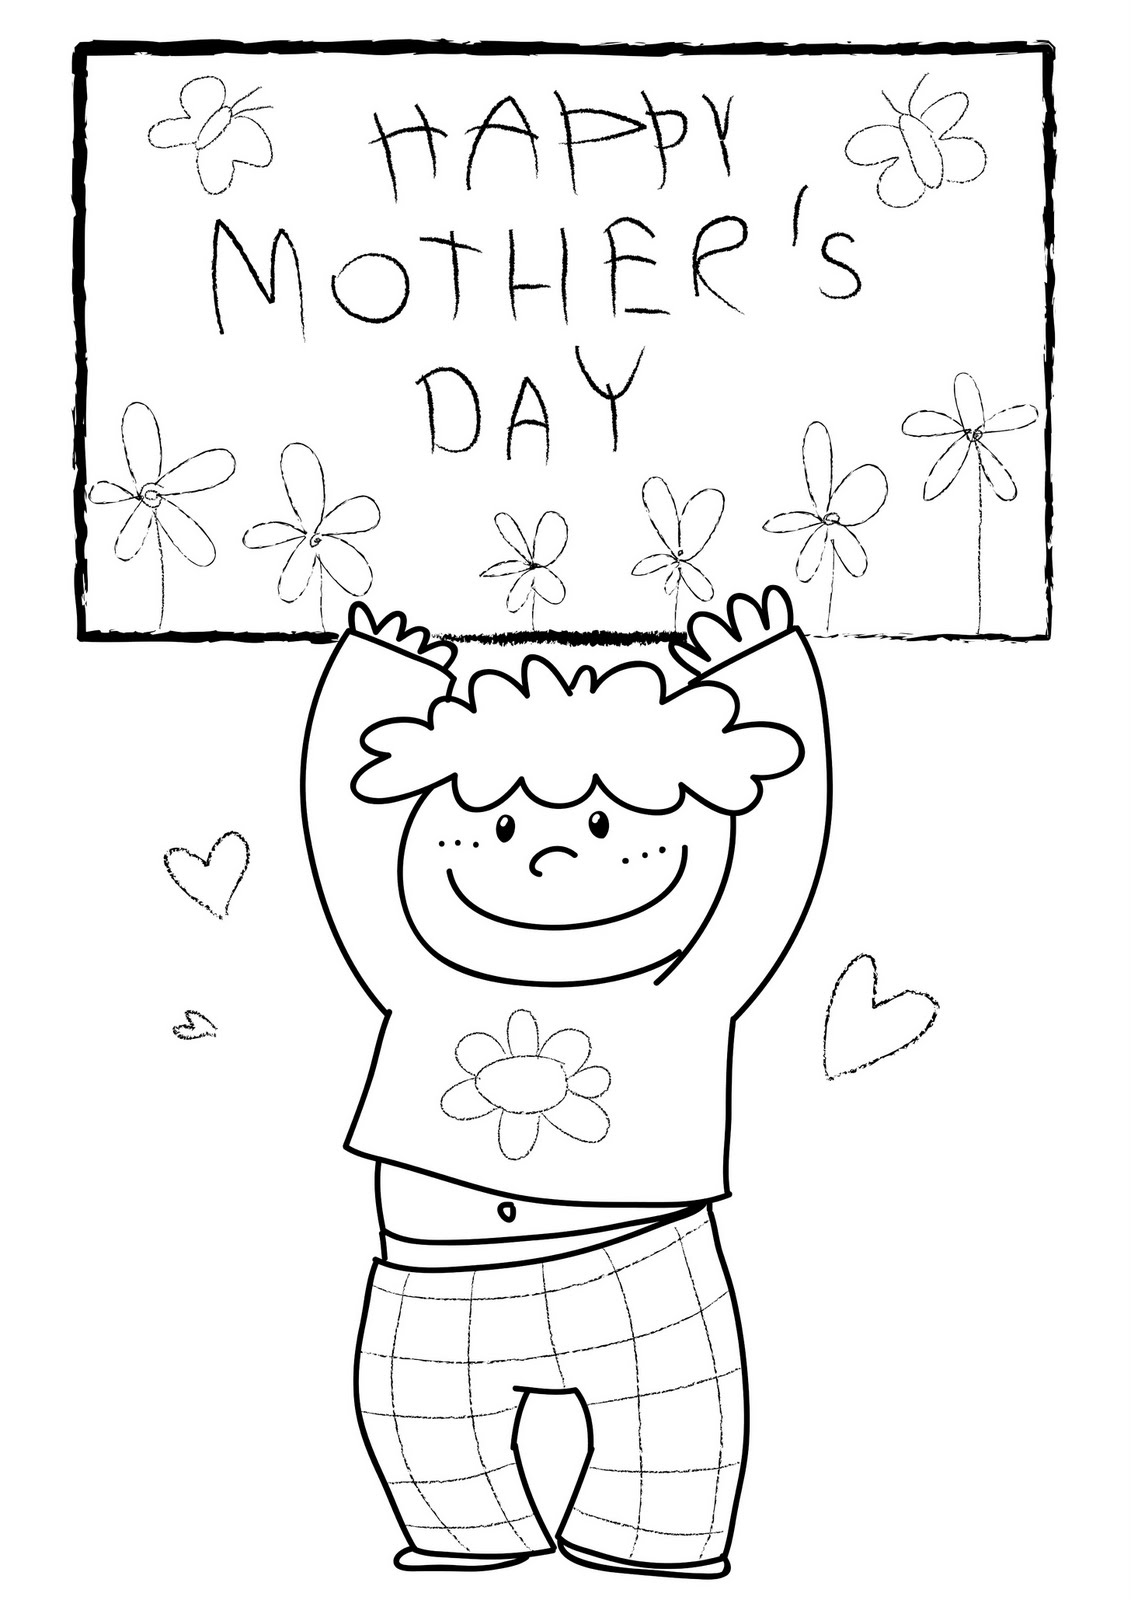 mother coloring pages for kids - photo#20